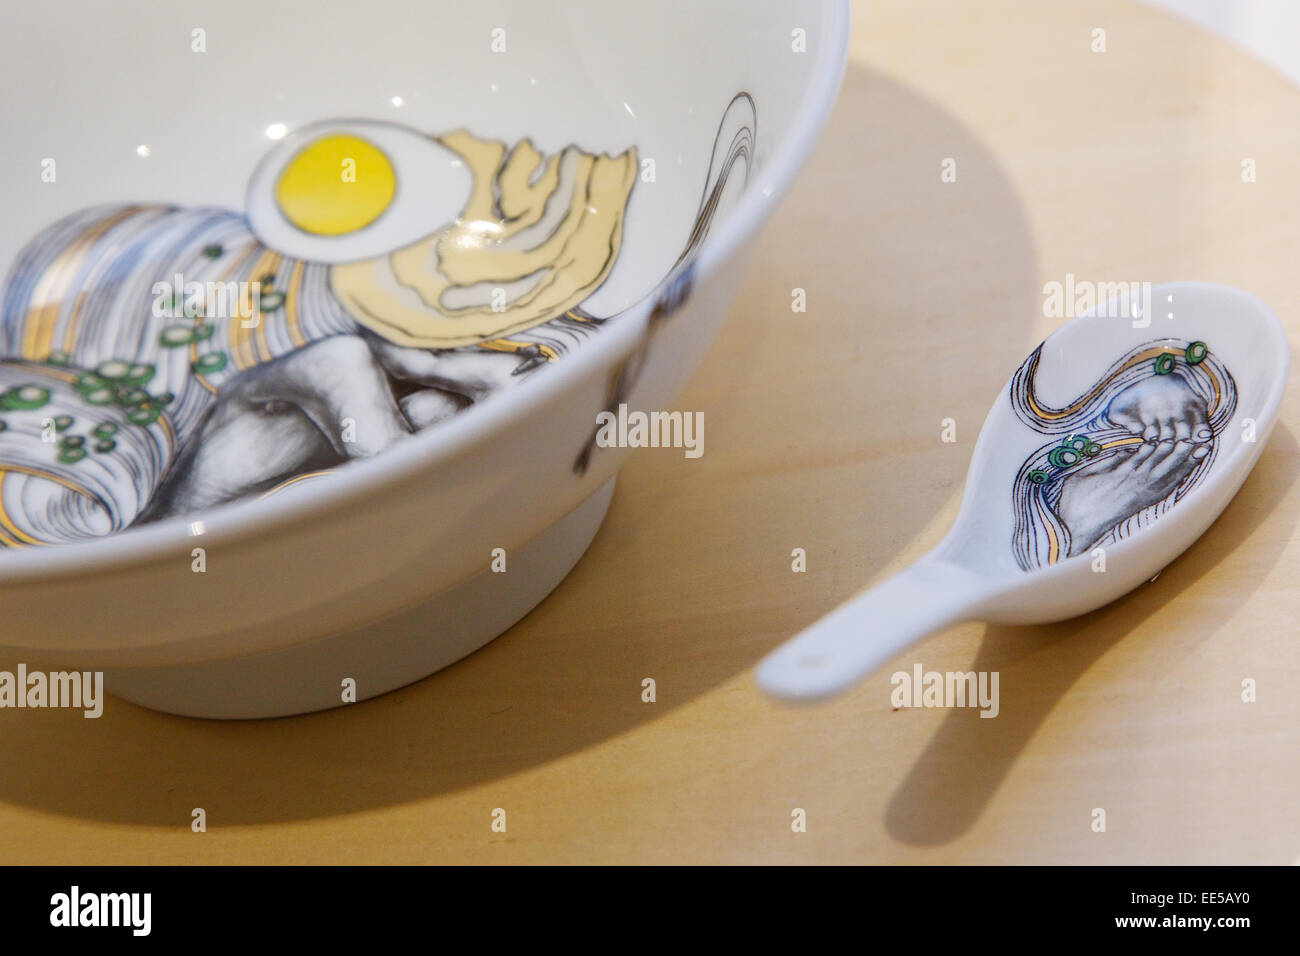 january 14 2015 tokyo japan a noodle bowl design on display at